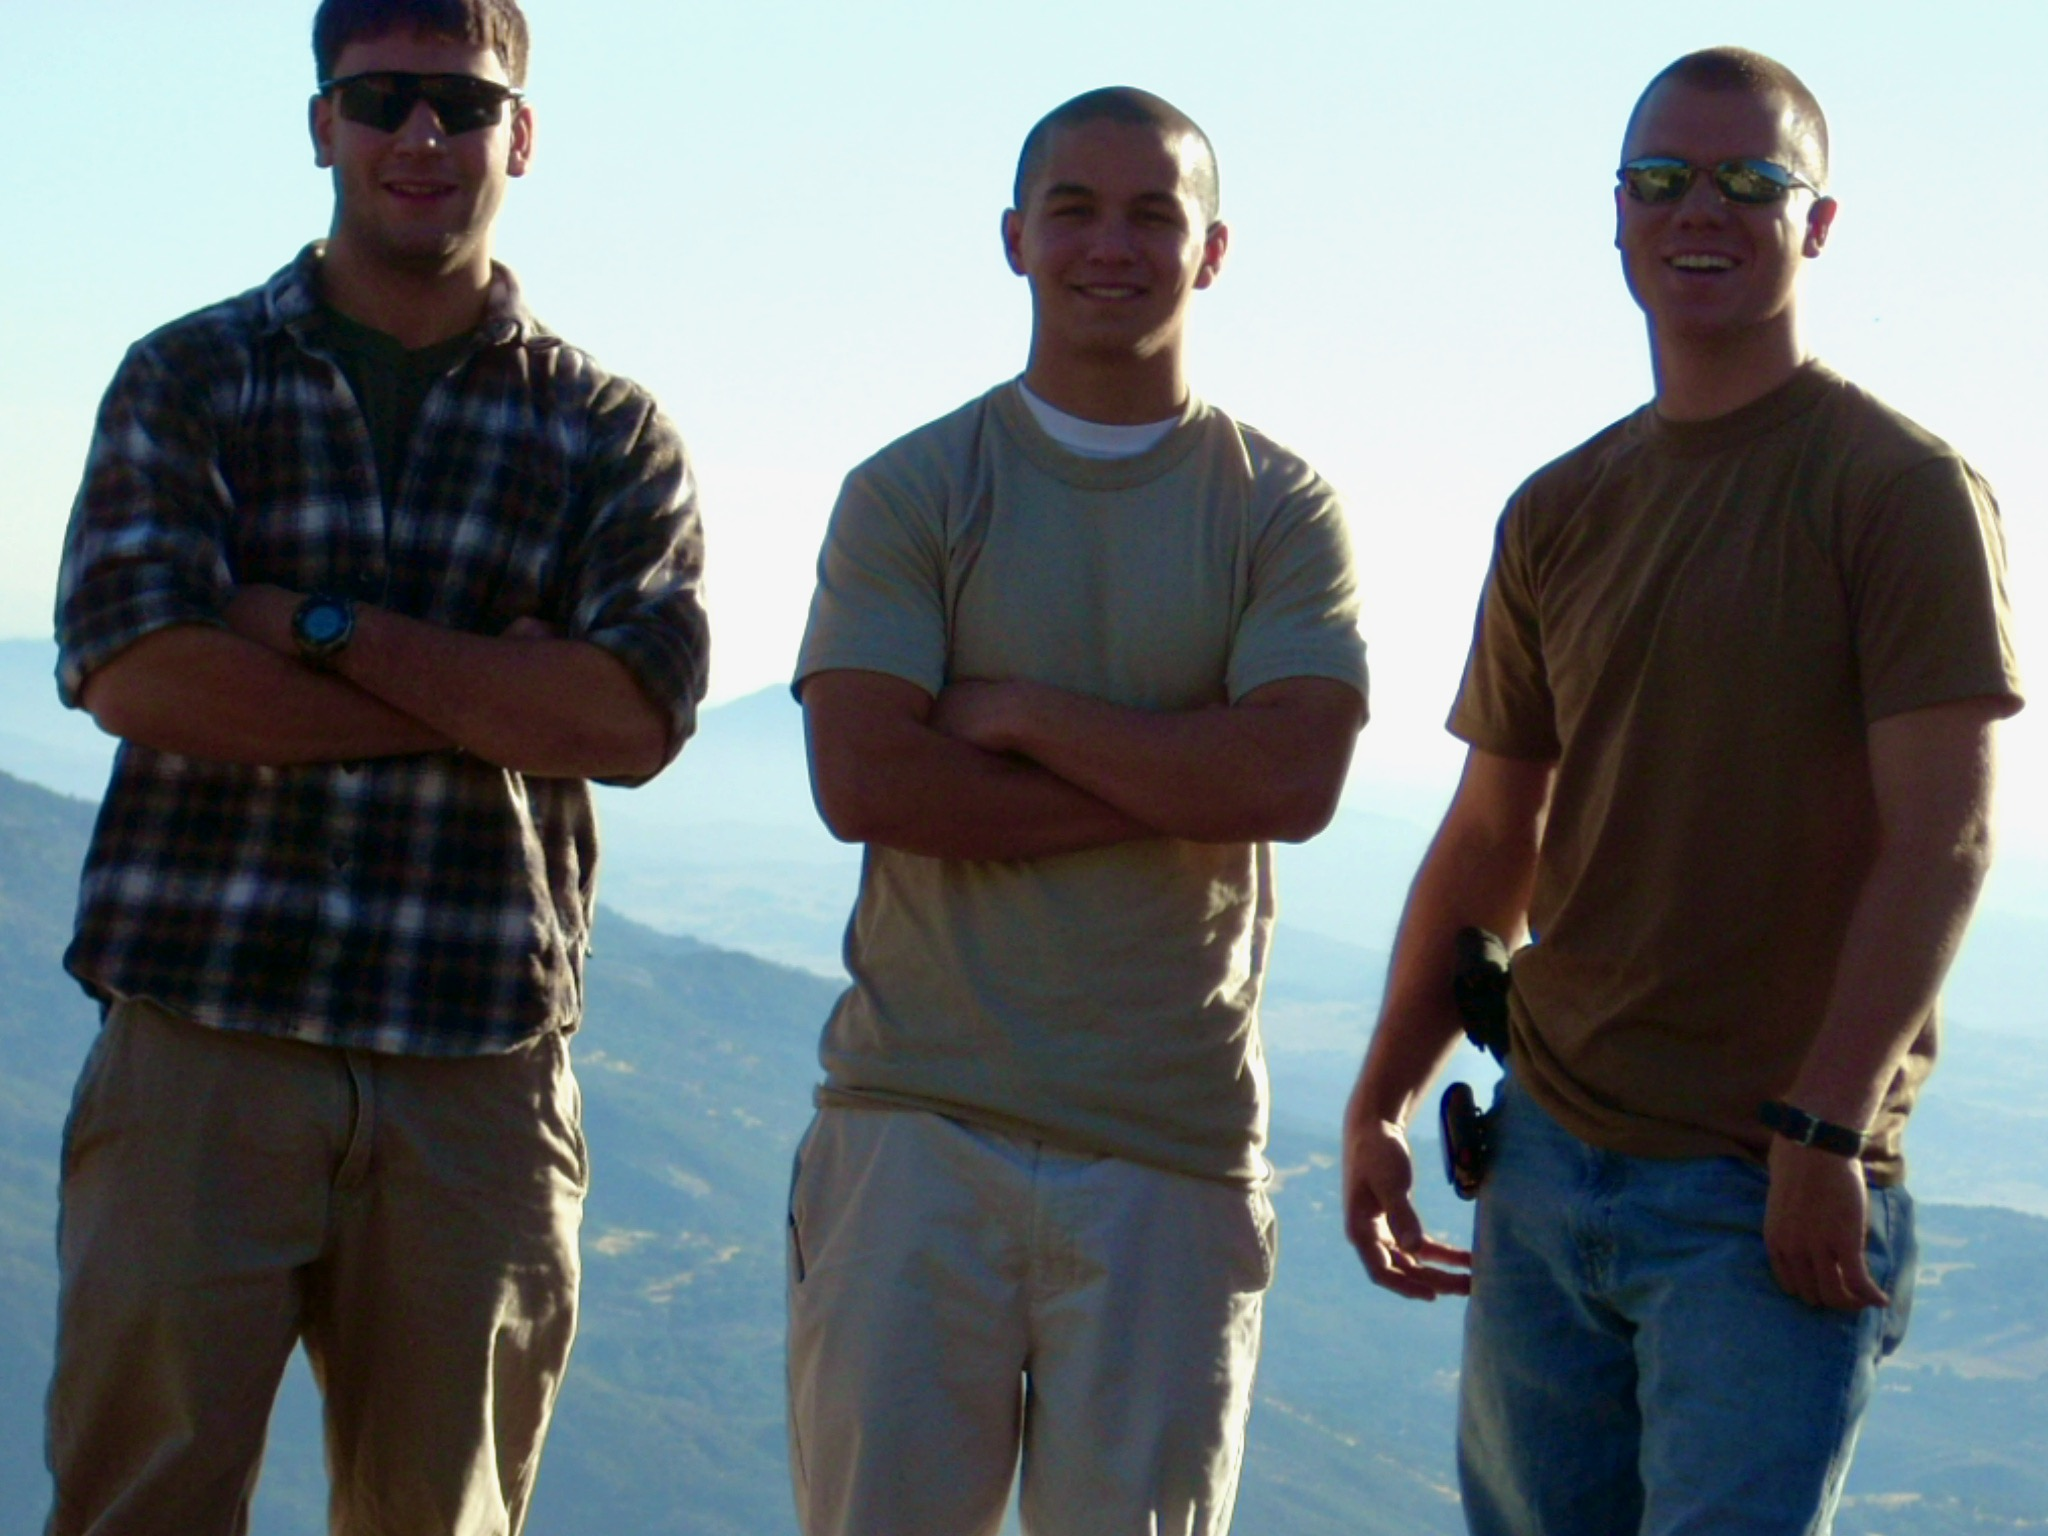 my son and two of his friends hiking together